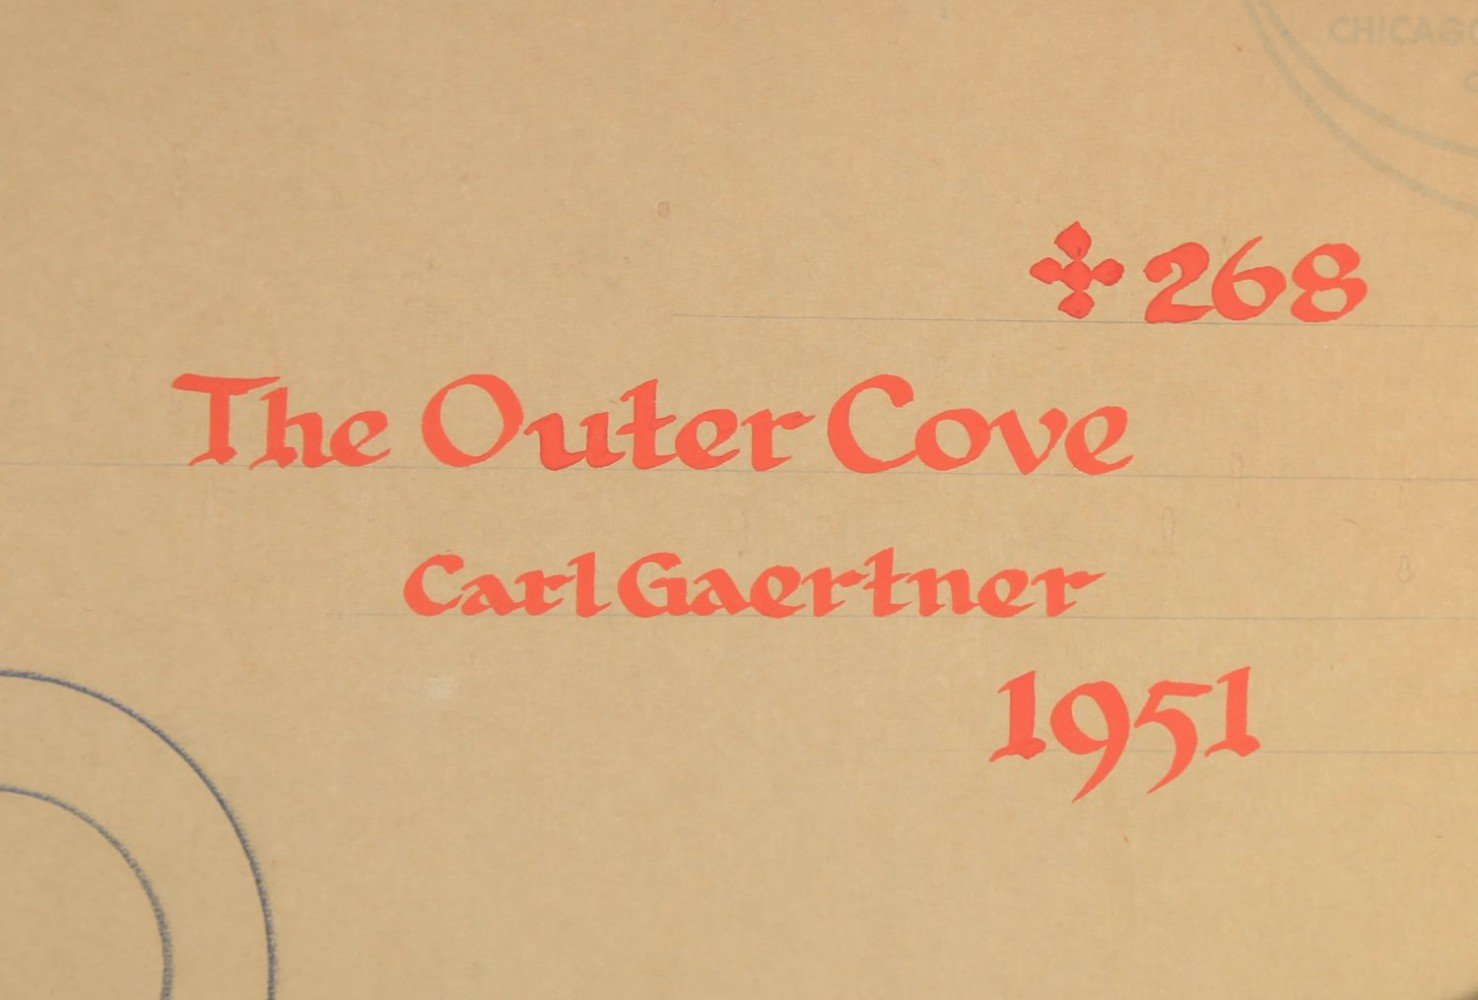 The Outer Cove by Carl Frederick Gaertner